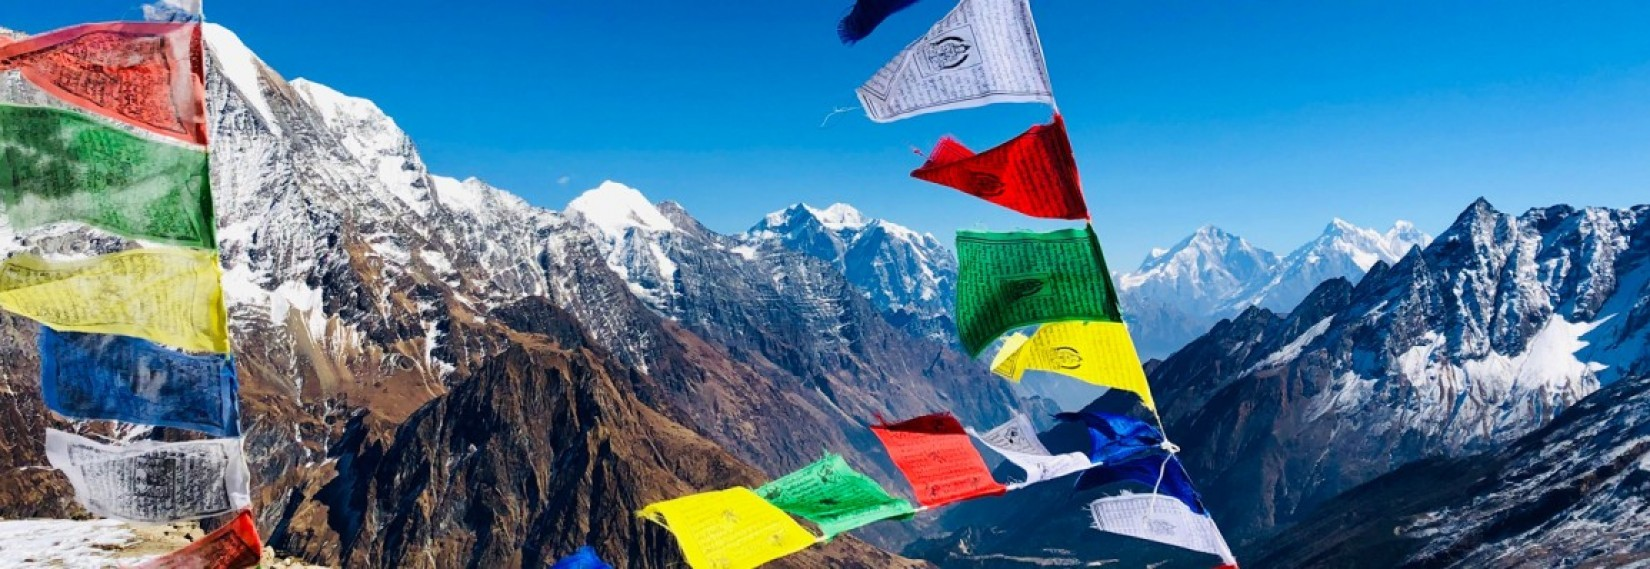 Manaslu Panoramic Mountain